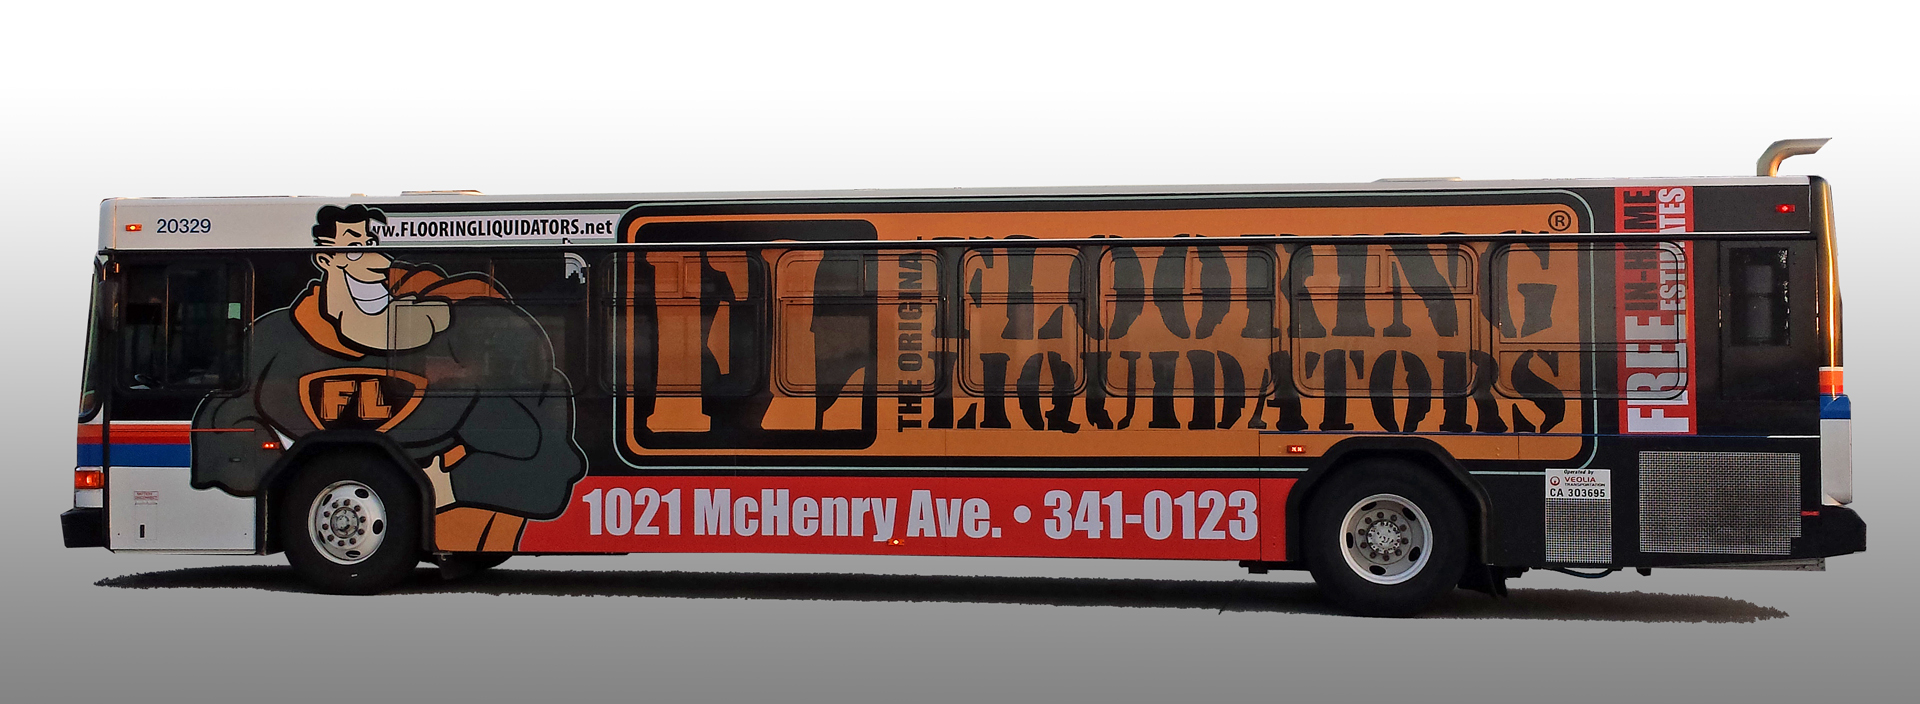 Full Side Bus Wrap For Flooring Liquidators